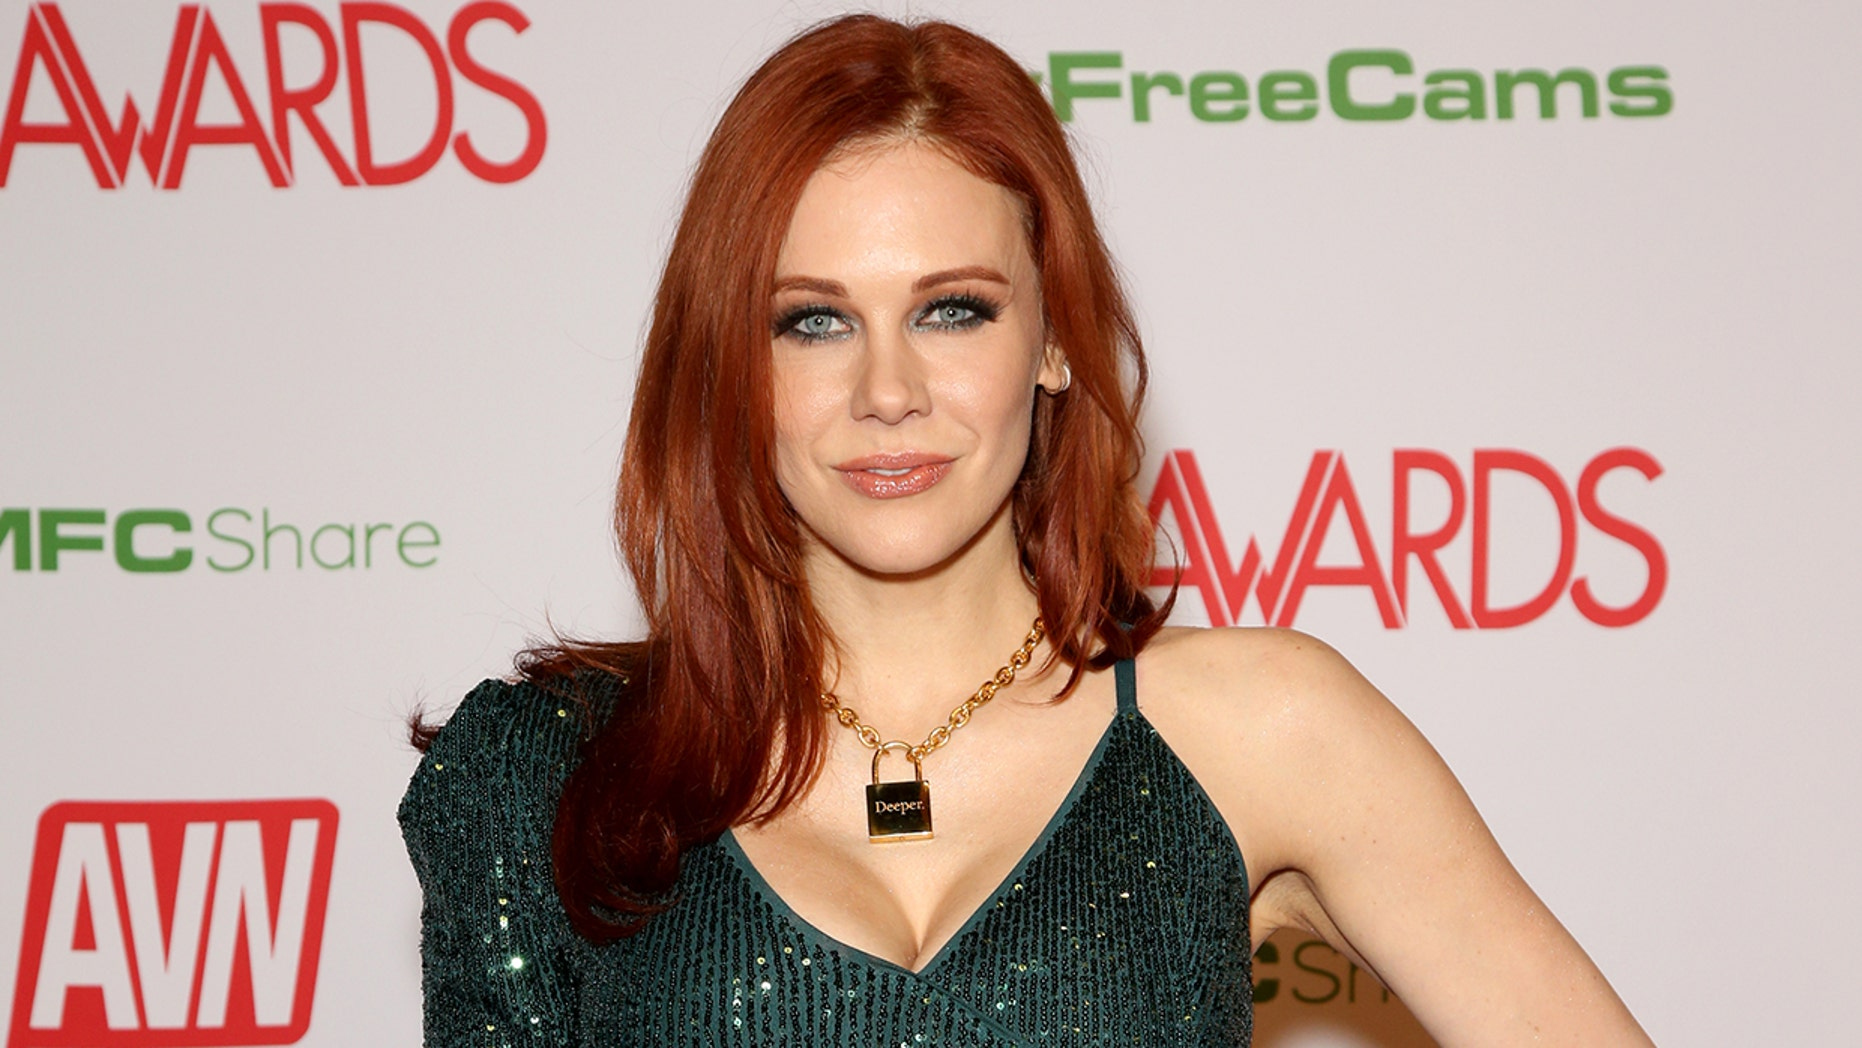 'Boy Meets World' star and porn actress Maitland Ward says typecasts forced her out of 'mainstream' Hollywood